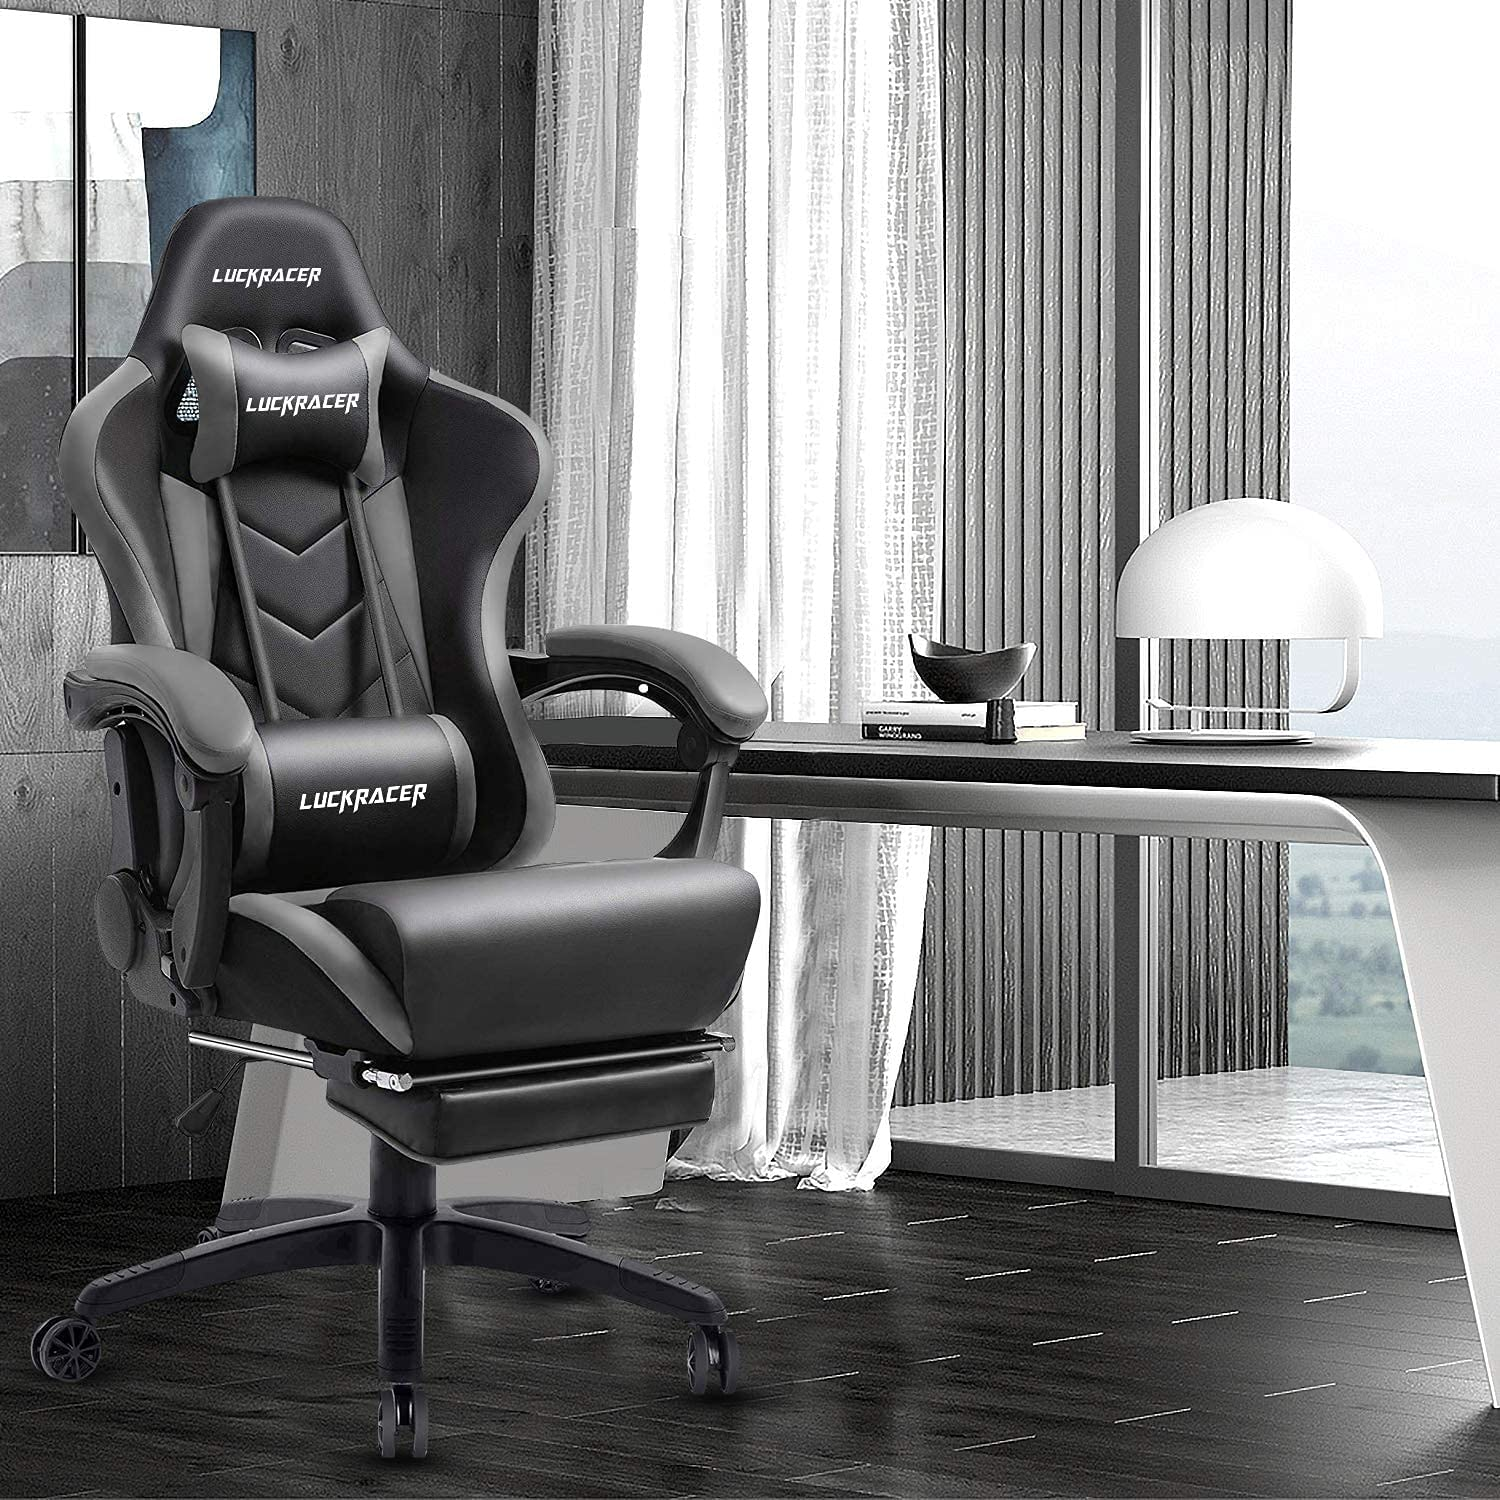 Gowins Gaming Chair with Footrest and Massage